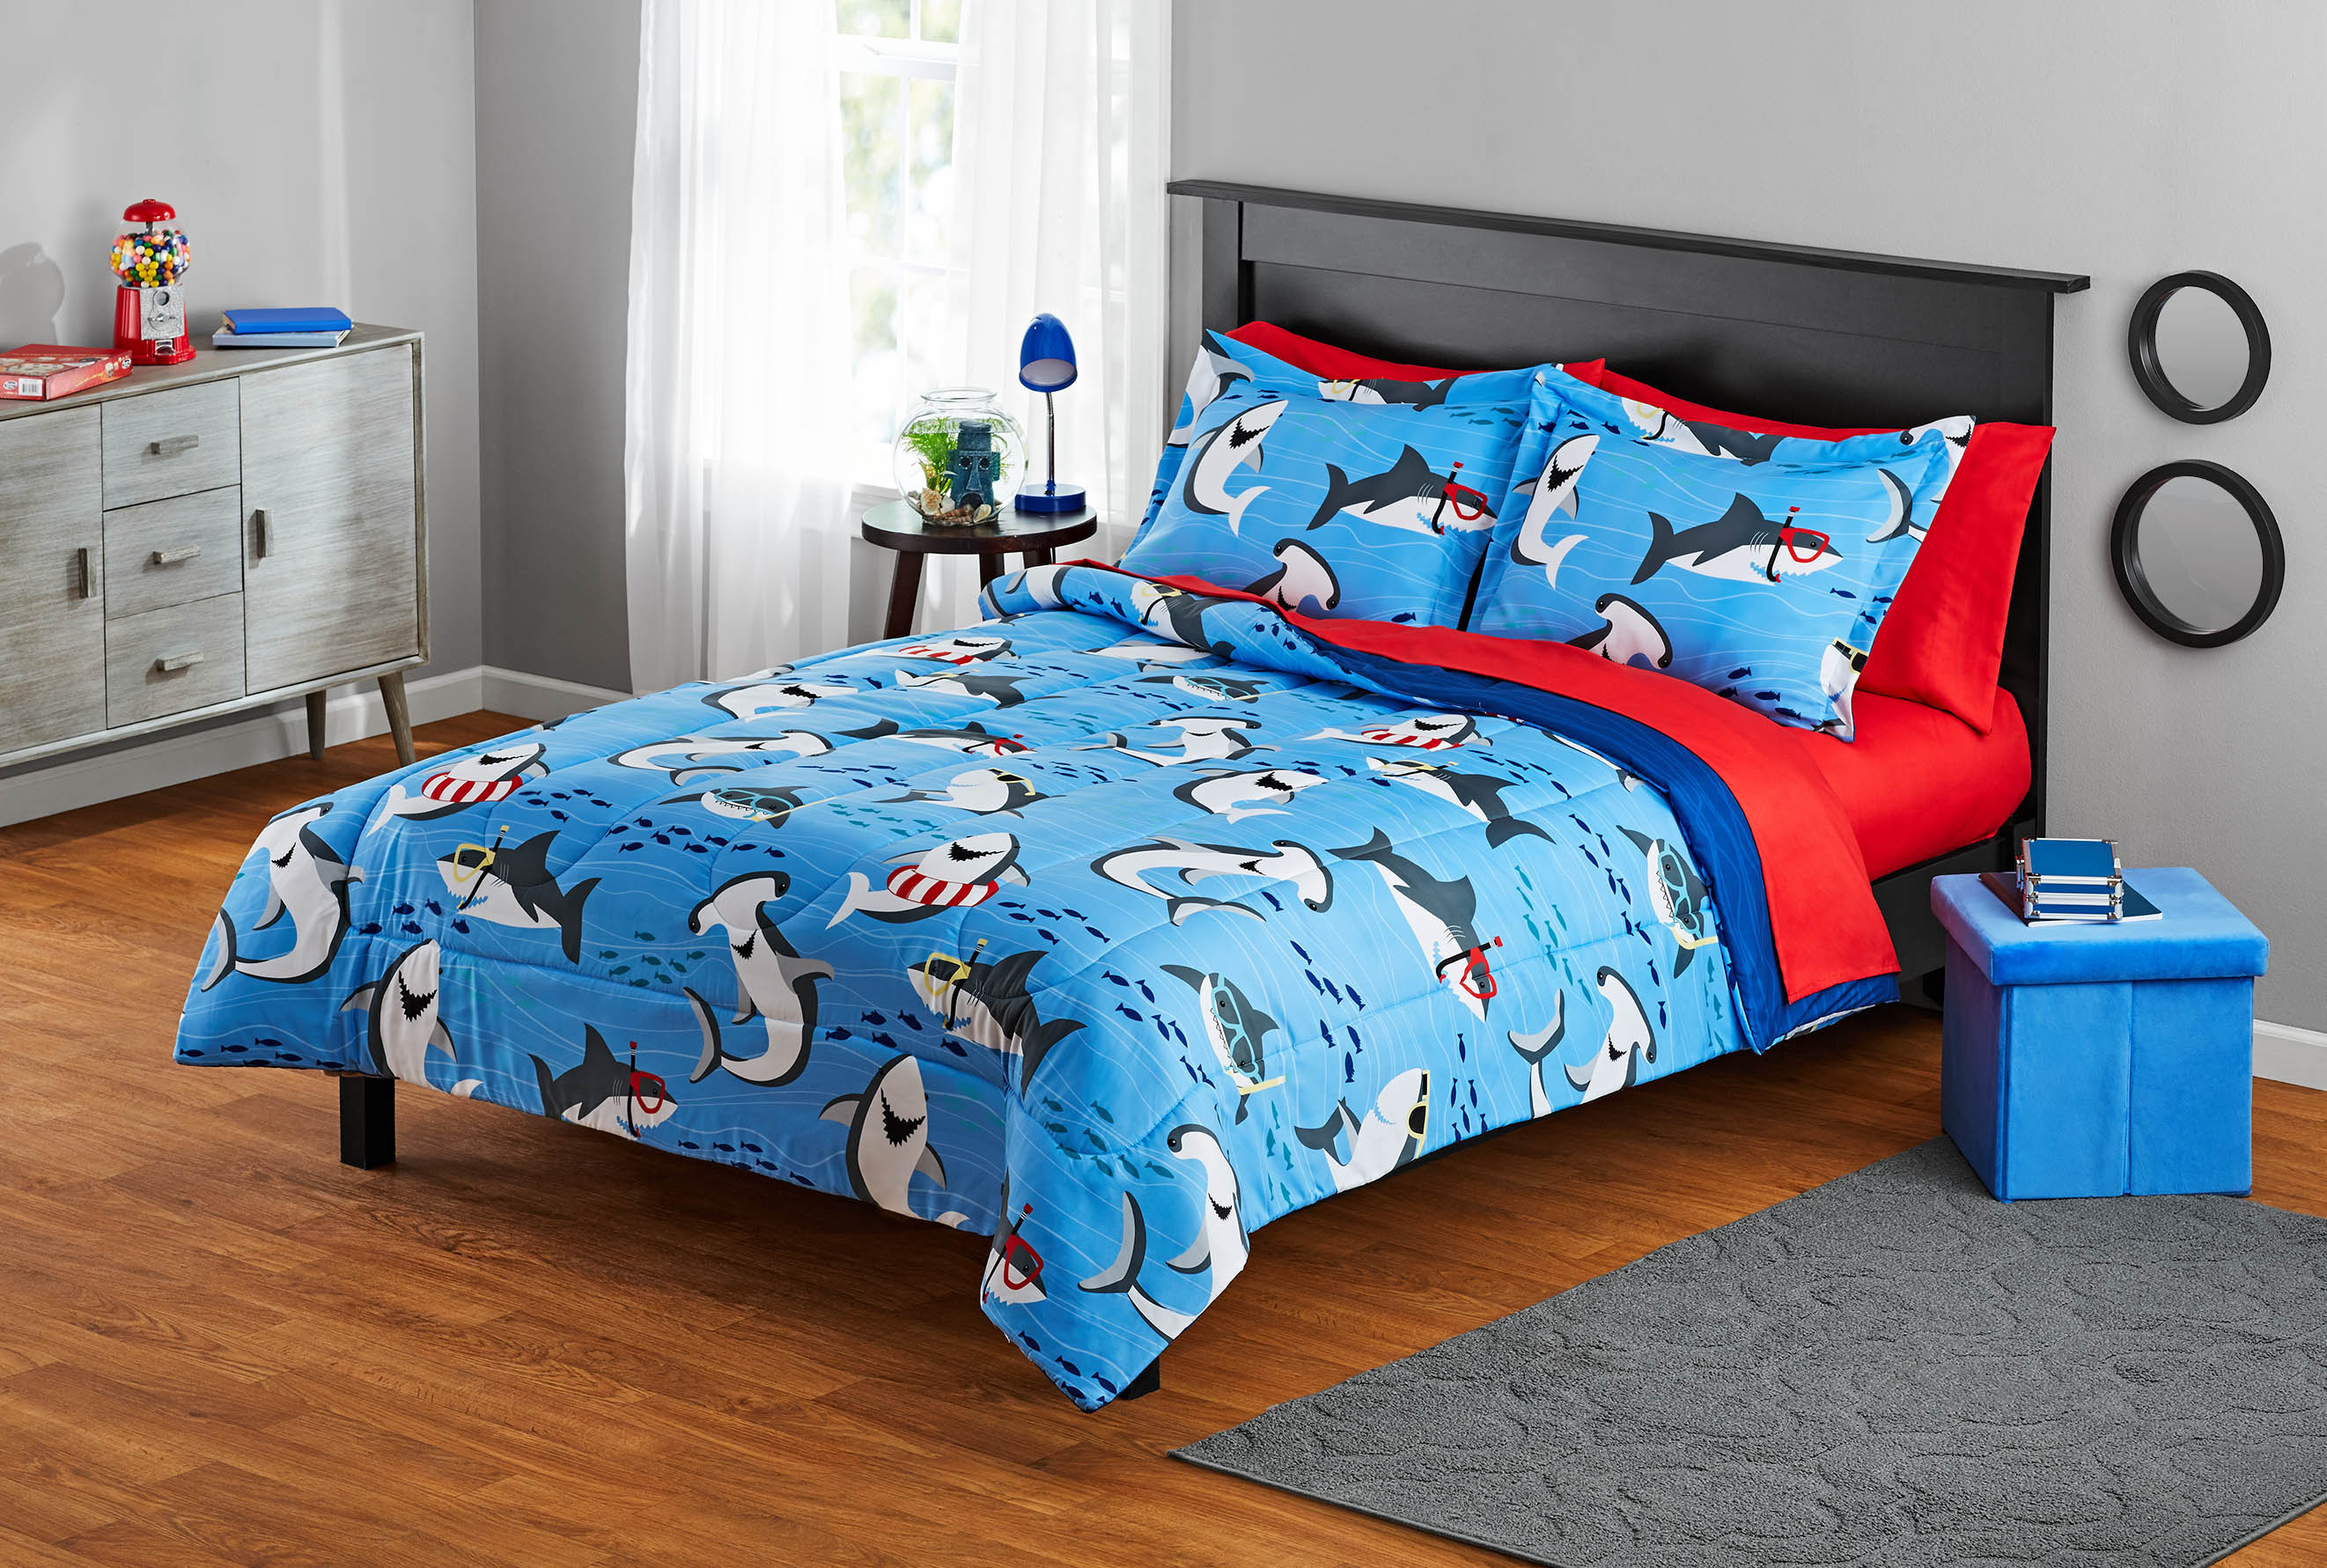 Your Zone Blue Sharks Bed-in-a-Bag Kids Bedding Set with Reversible Comforter